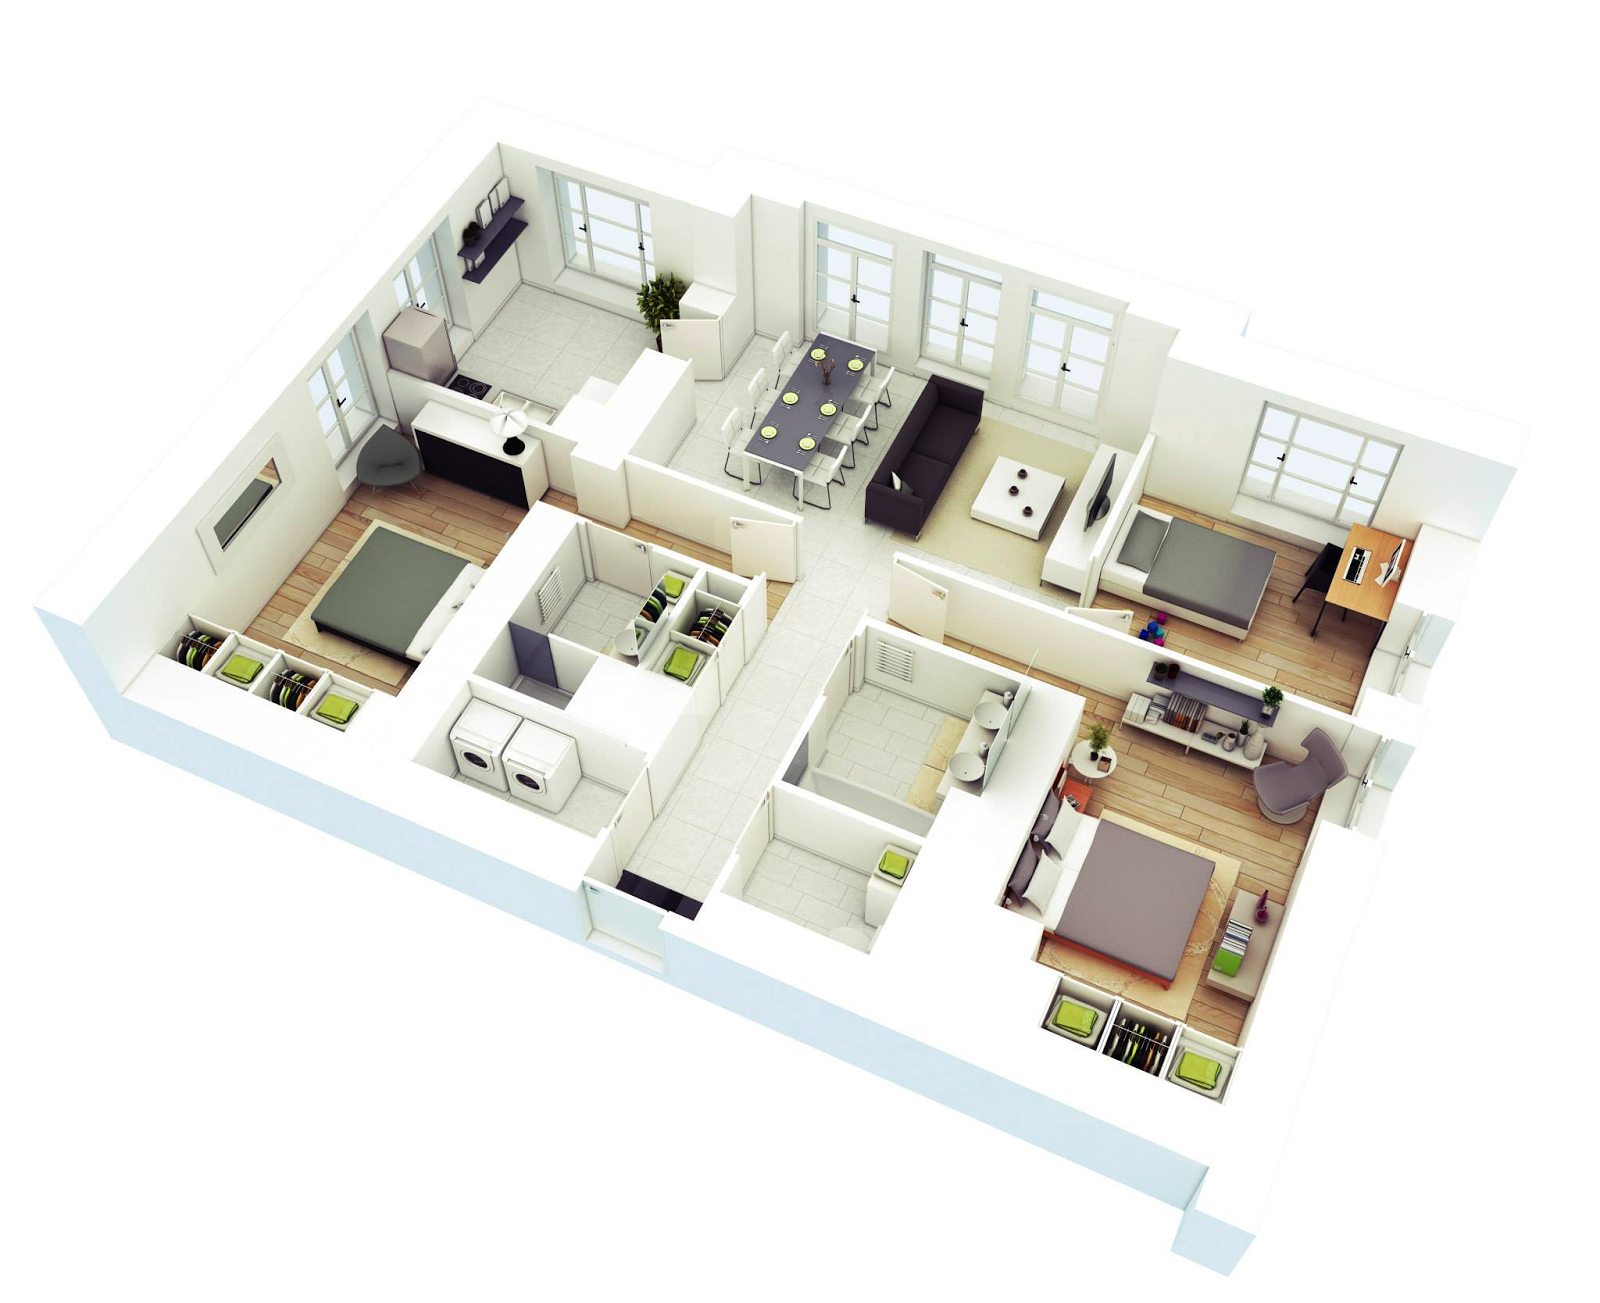 3 Bedroom Home Design Plans Free 3 Bedrooms House Design And Layout